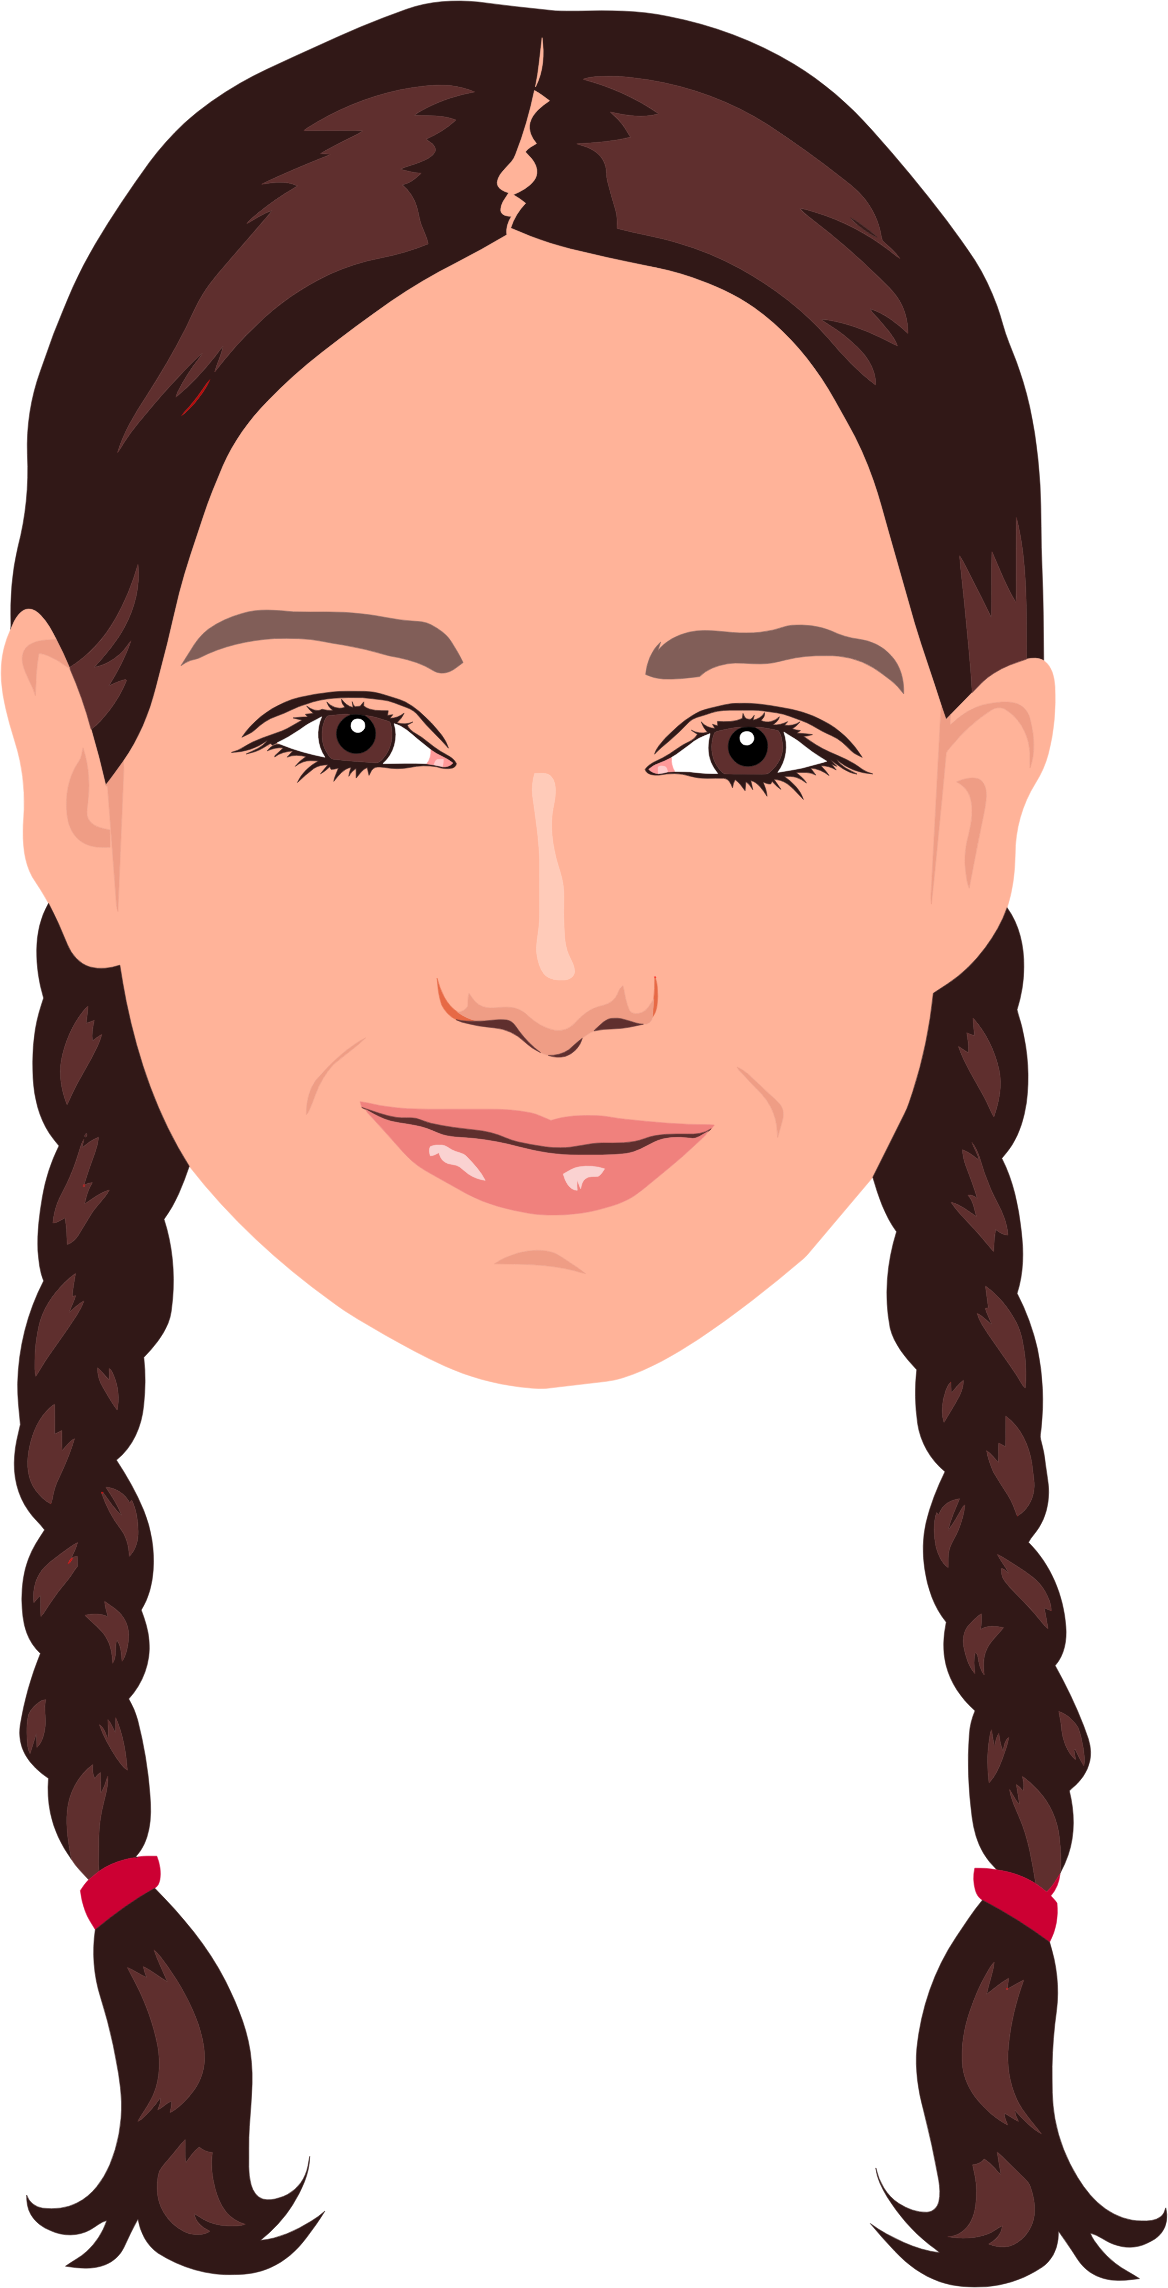 Red Hair clipart braided hair #3